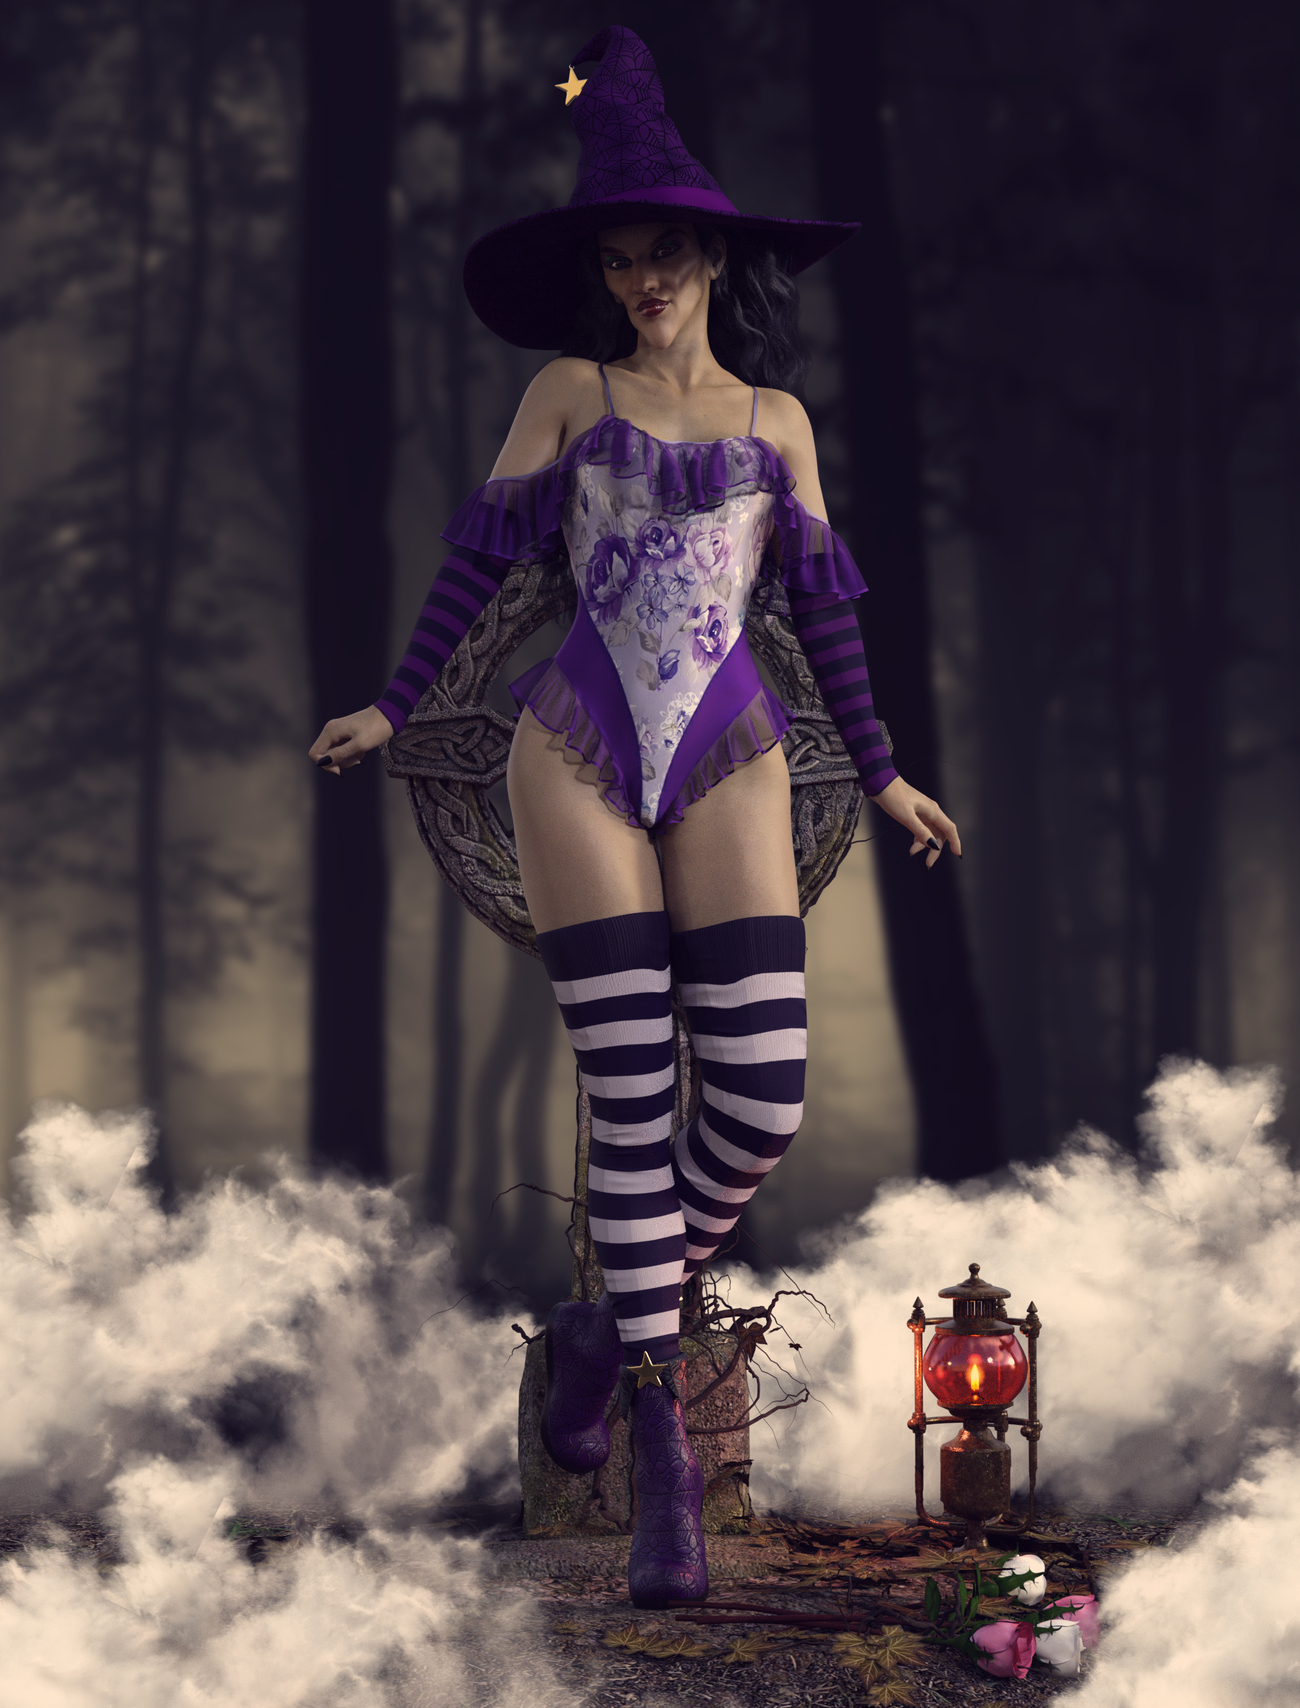 Spooky Frills Swimsuit G8F by Alexaana by crender